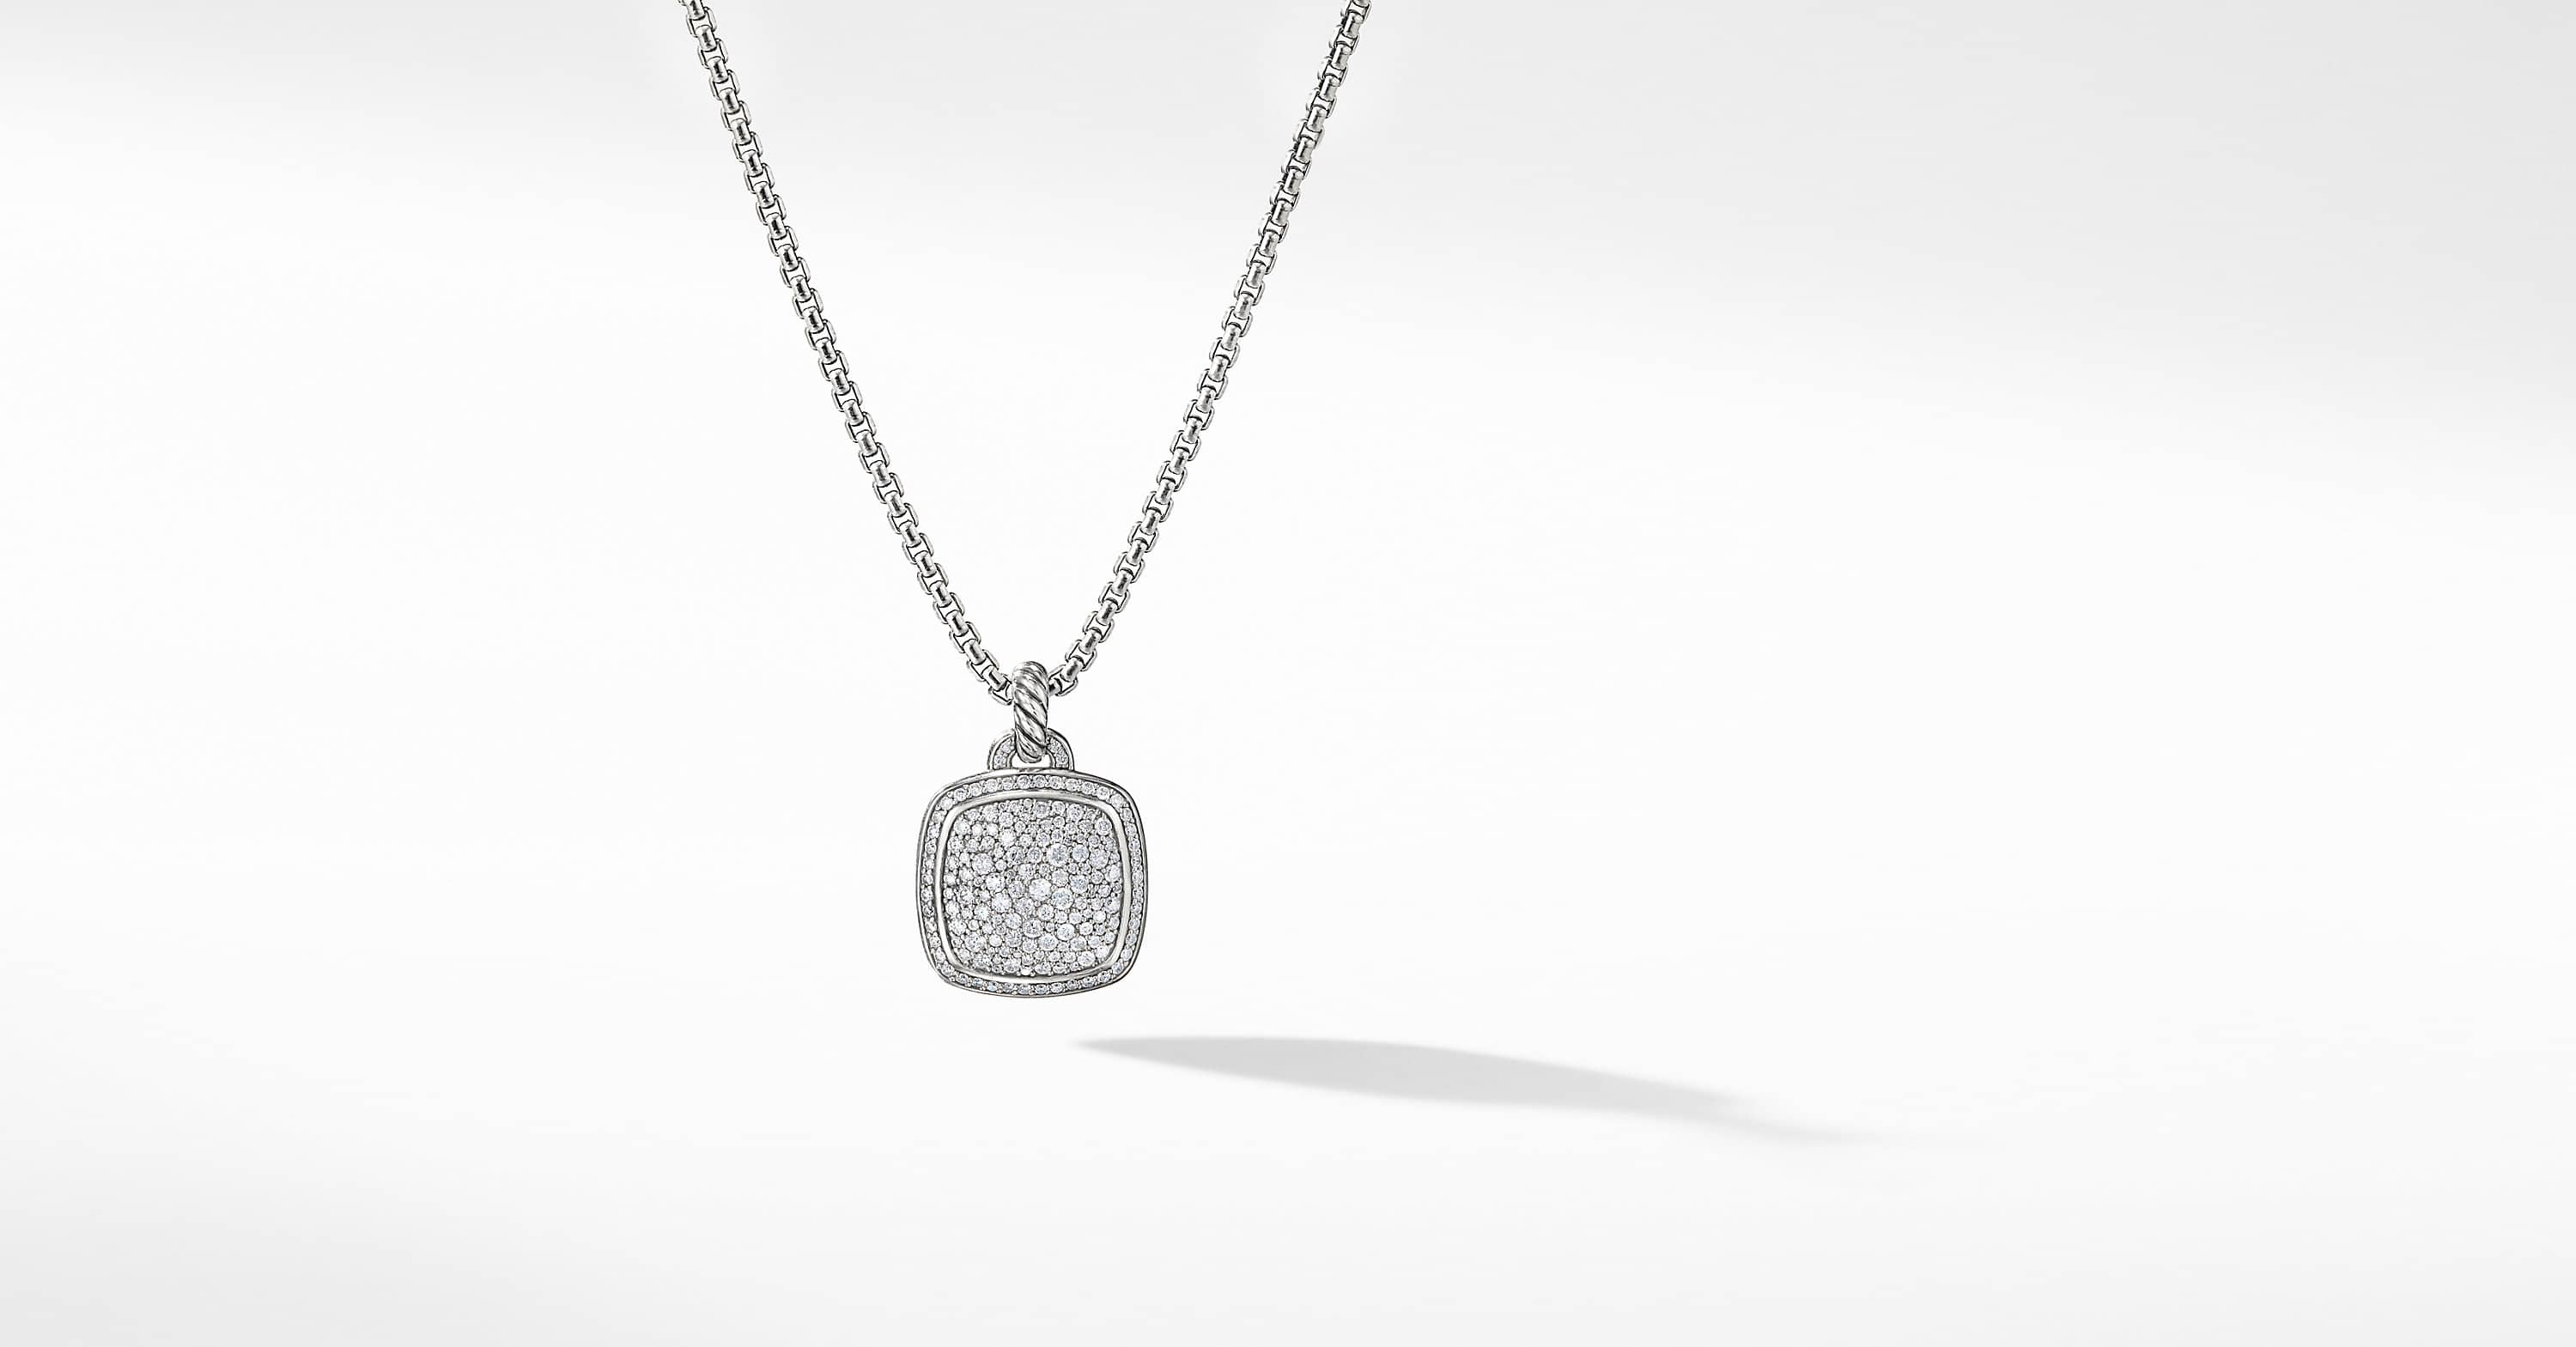 Albion Pendant with Diamonds, 17mm